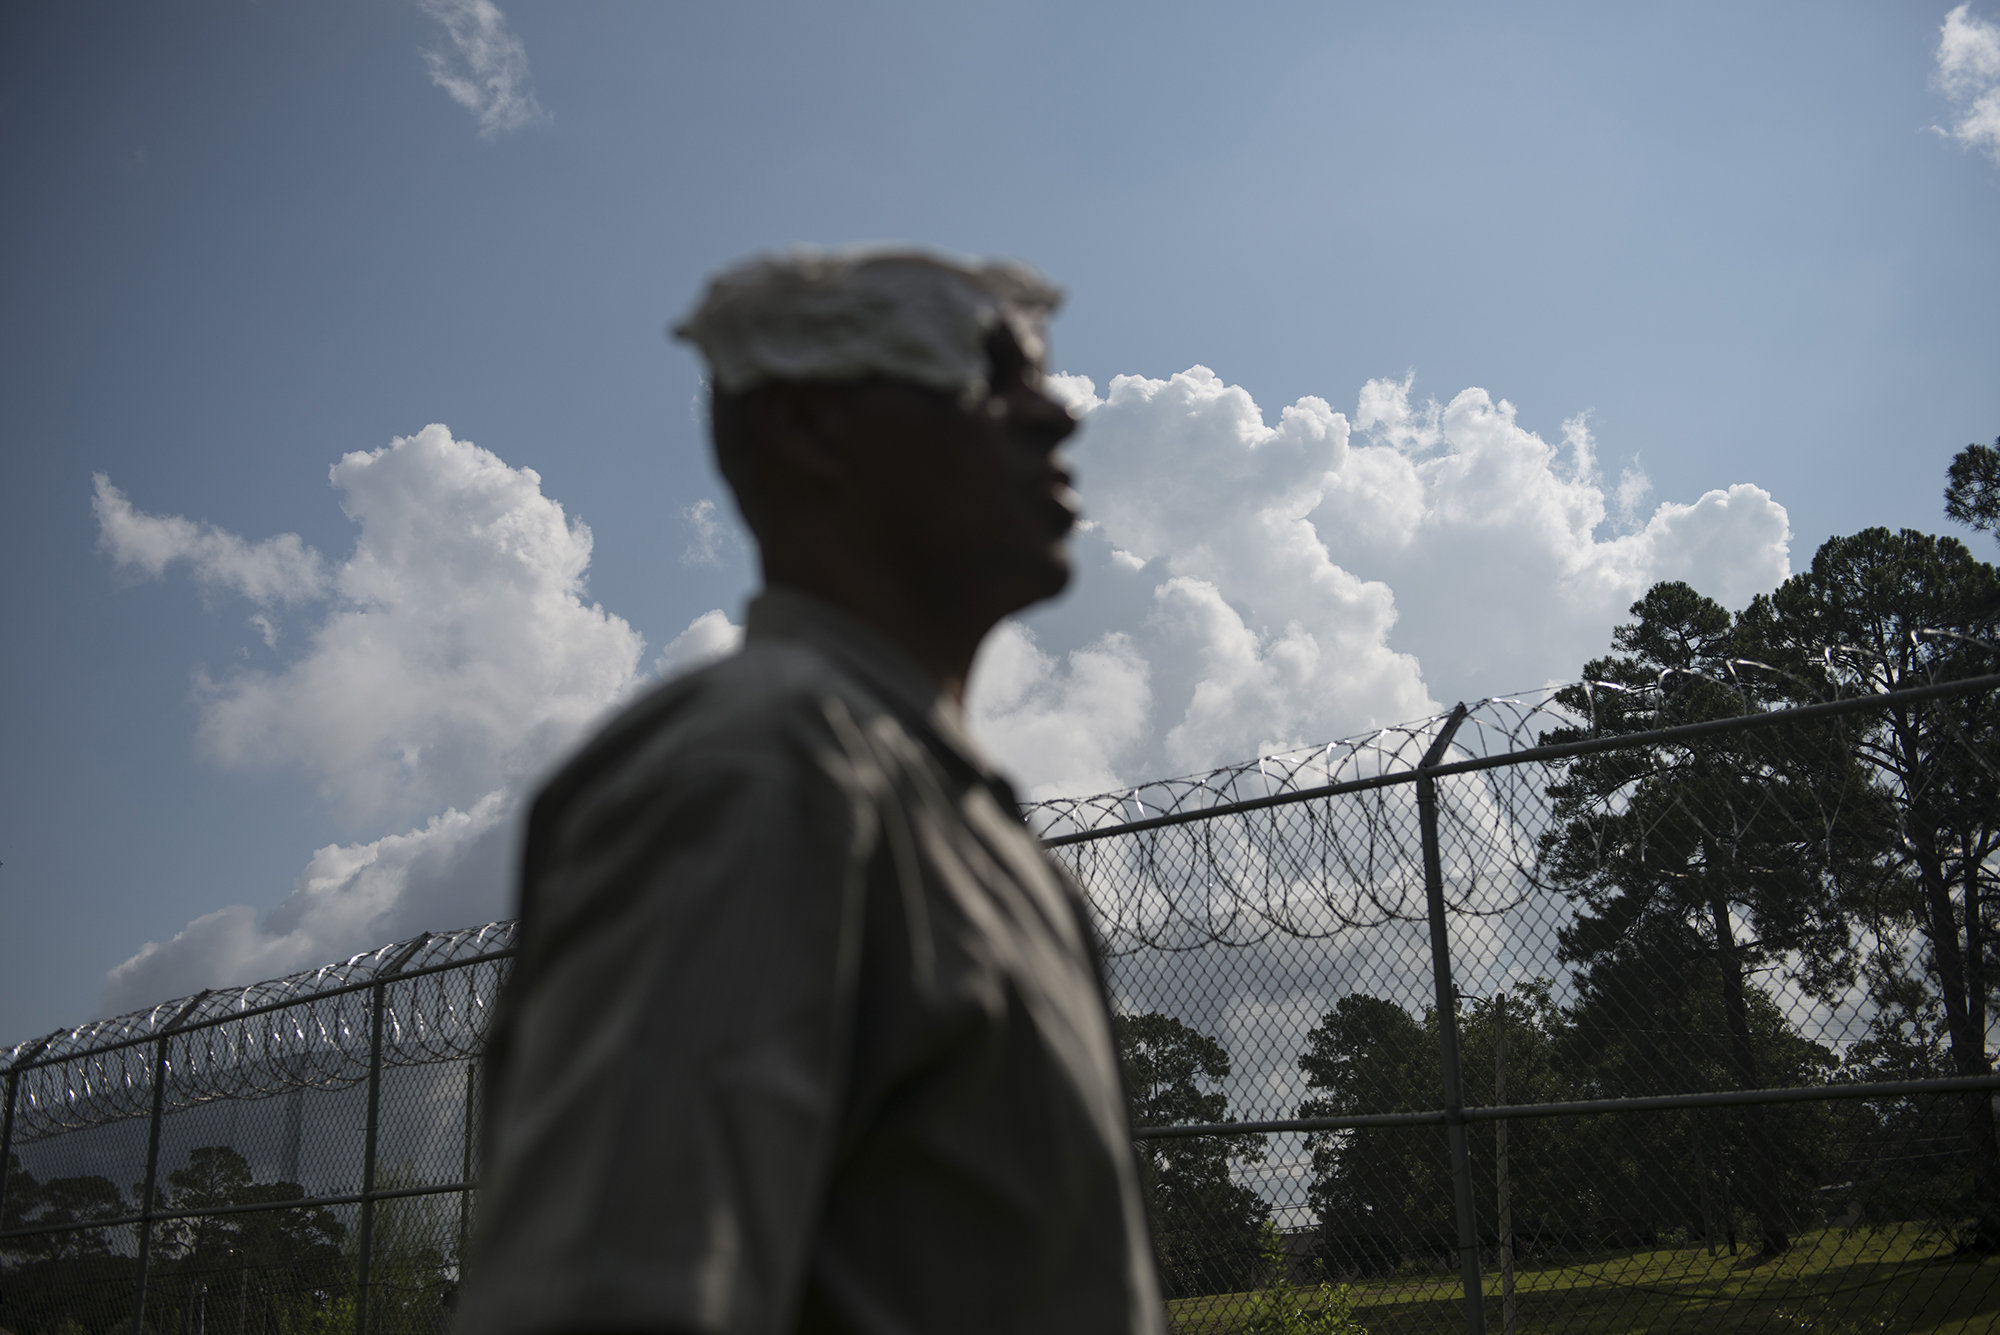 USA, Florida, Marianna, 03 August 2013, John Bonner looks out over barbed wire fencing at what was once the White House, where he was brutally beaten while sentenced at Dozier.